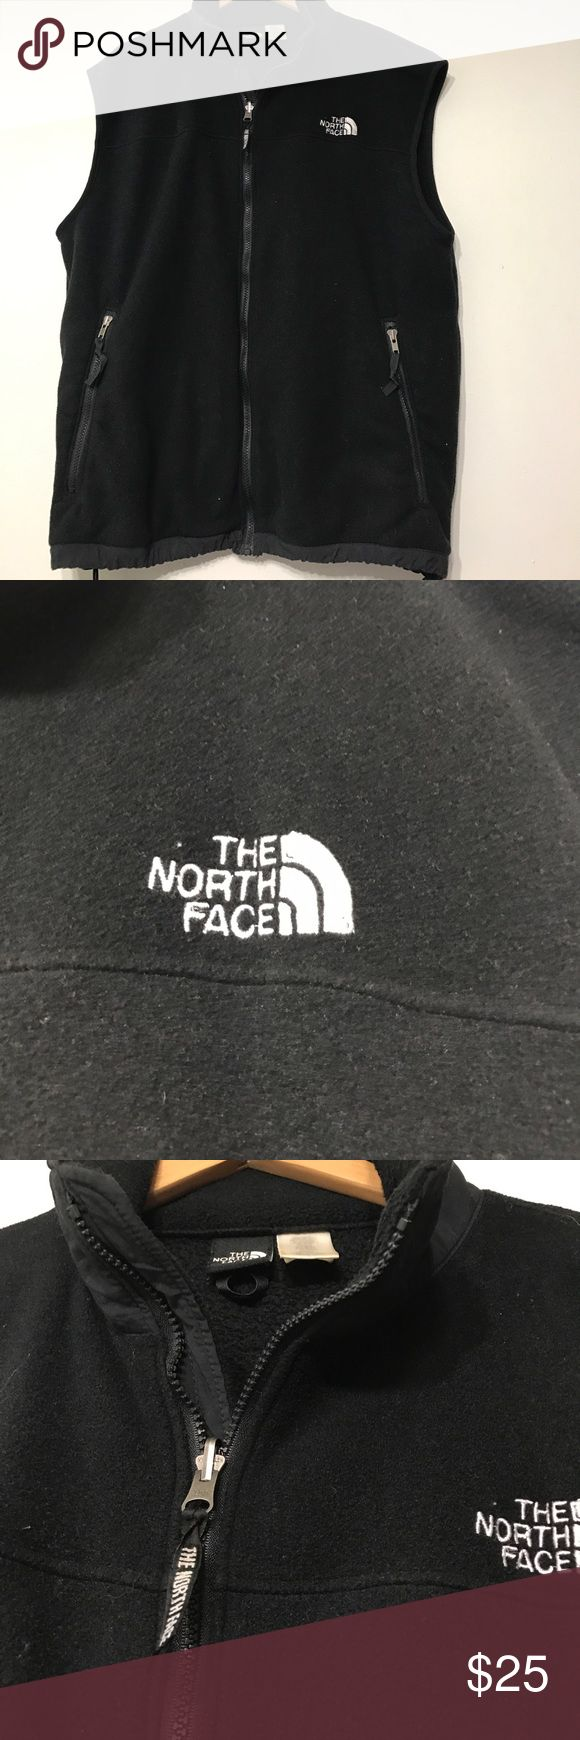 North Face Vest Men's Black North Face vest really good condition no flaws or holes. North Face Jackets & Coats Vests